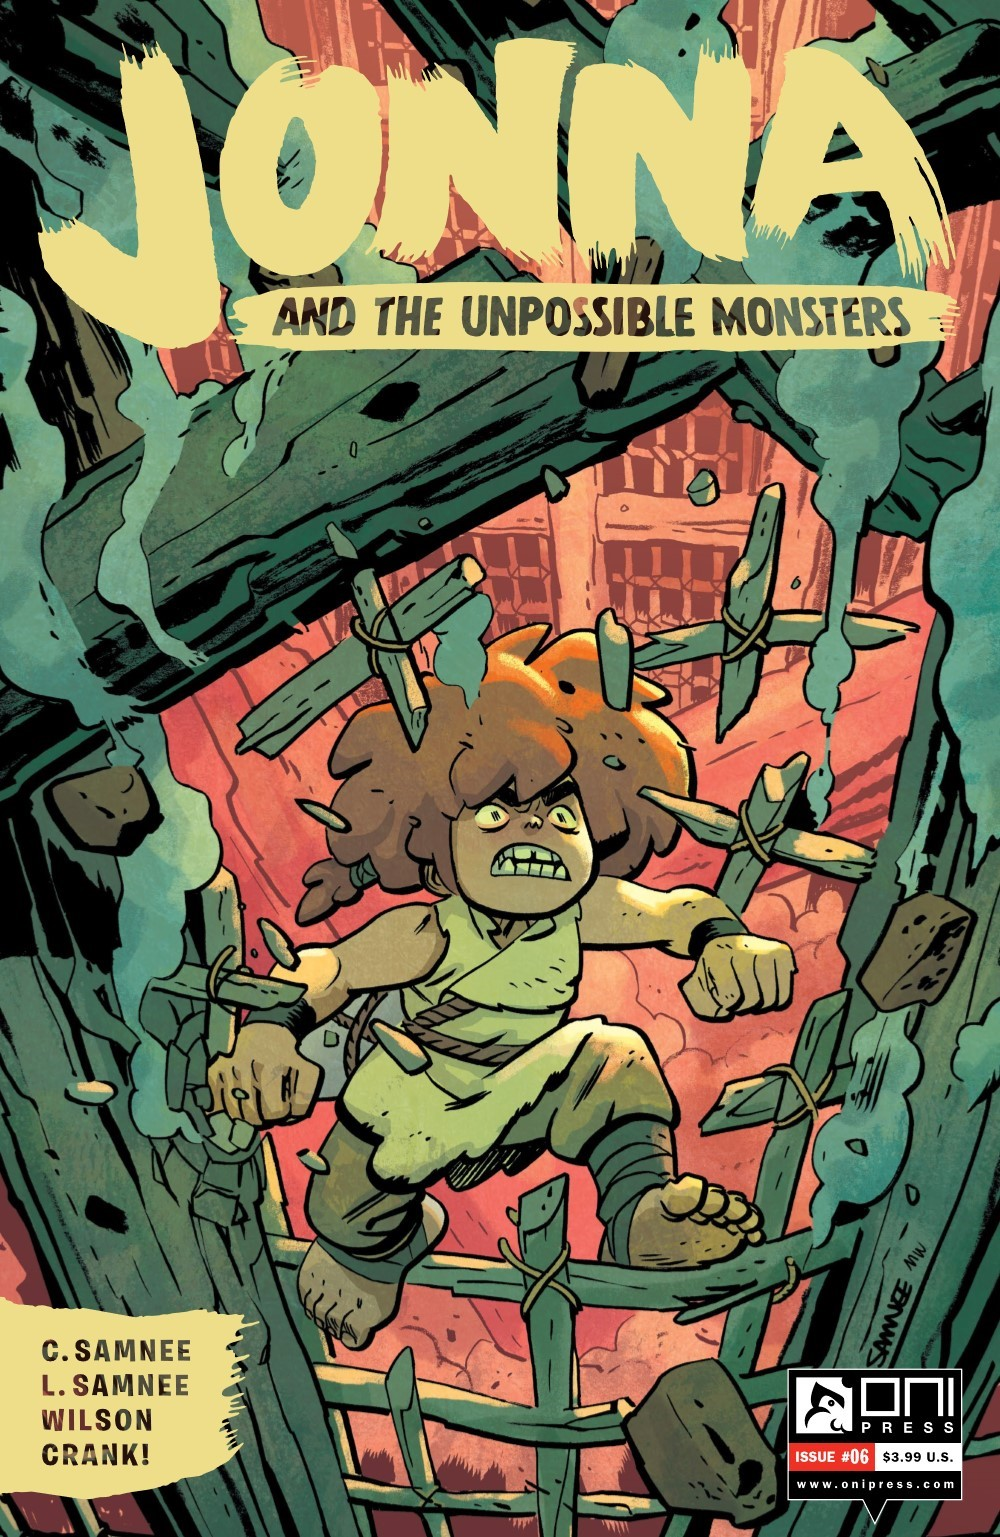 JONNA-6-REFERENCE-01 ComicList: Oni Press New Releases for 09/22/2021